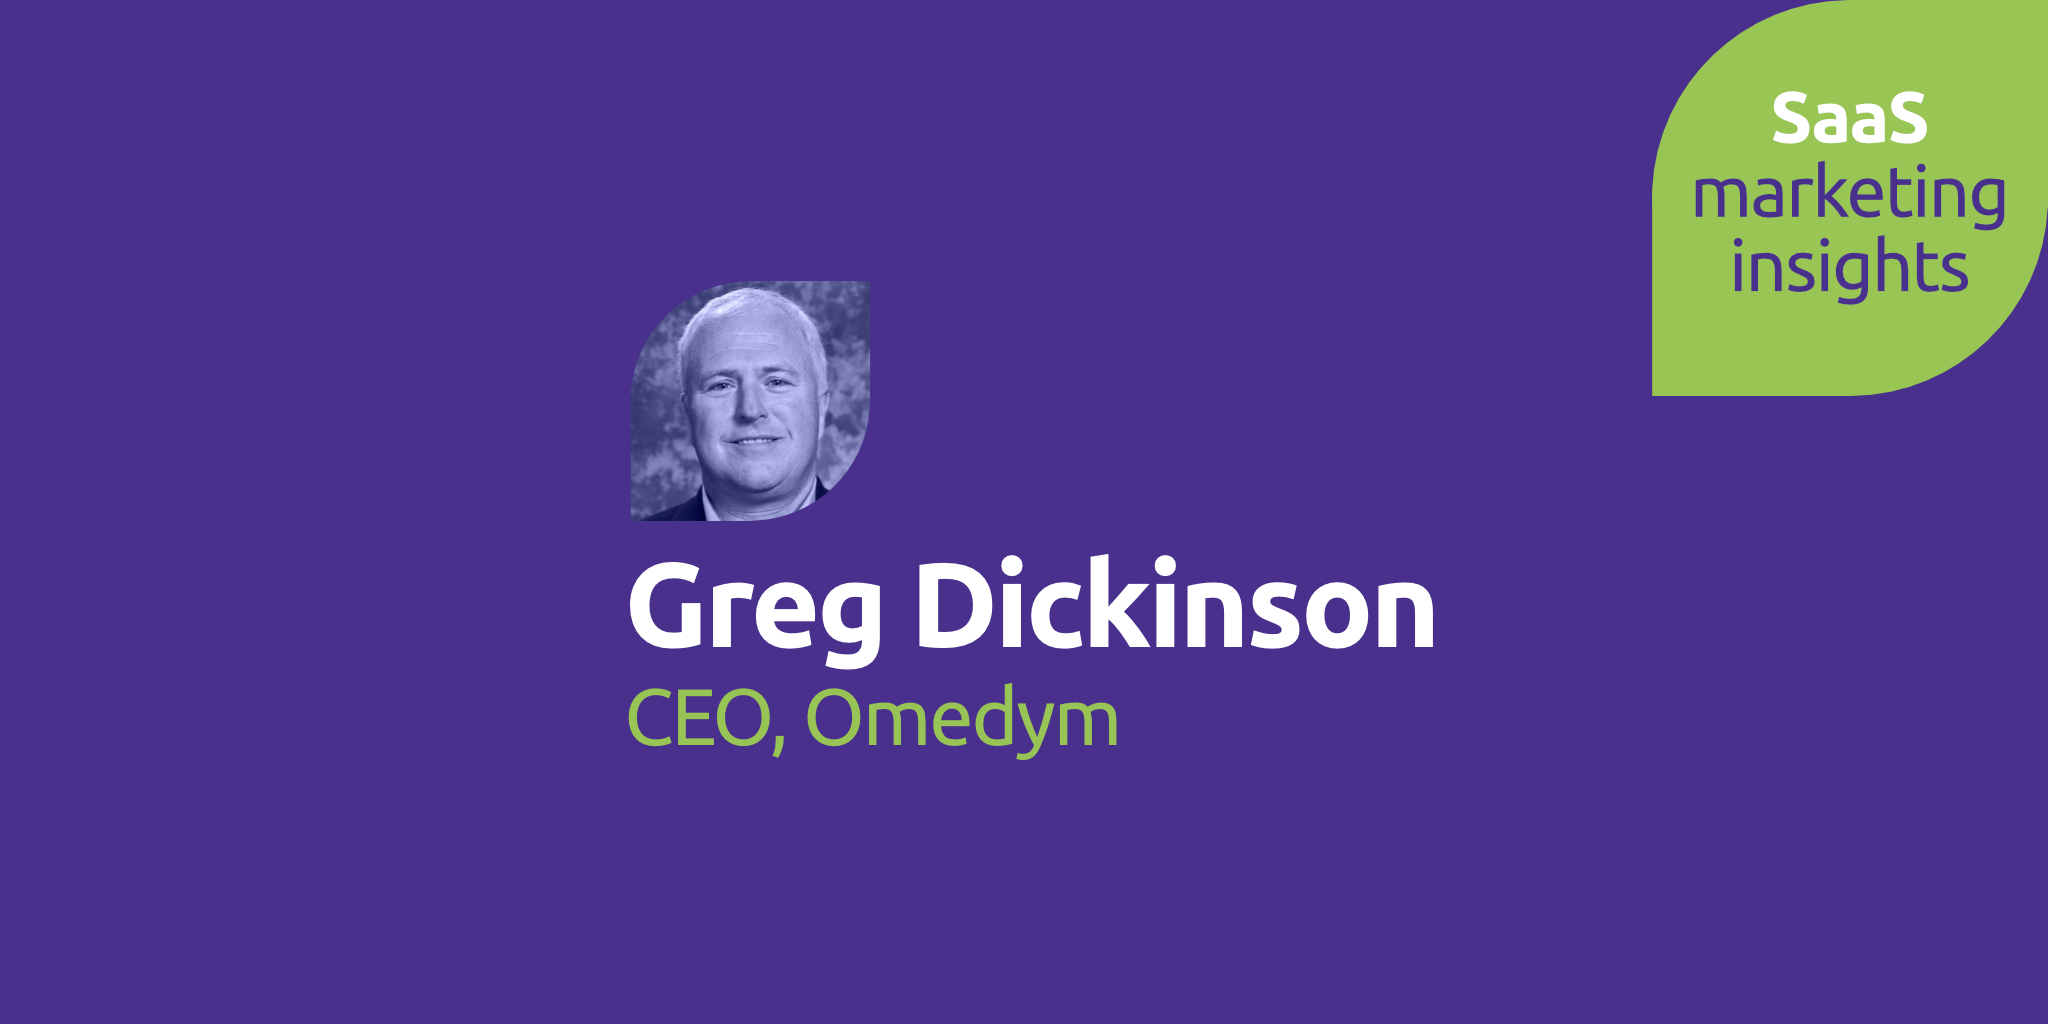 Greg Dickinson, Omedym